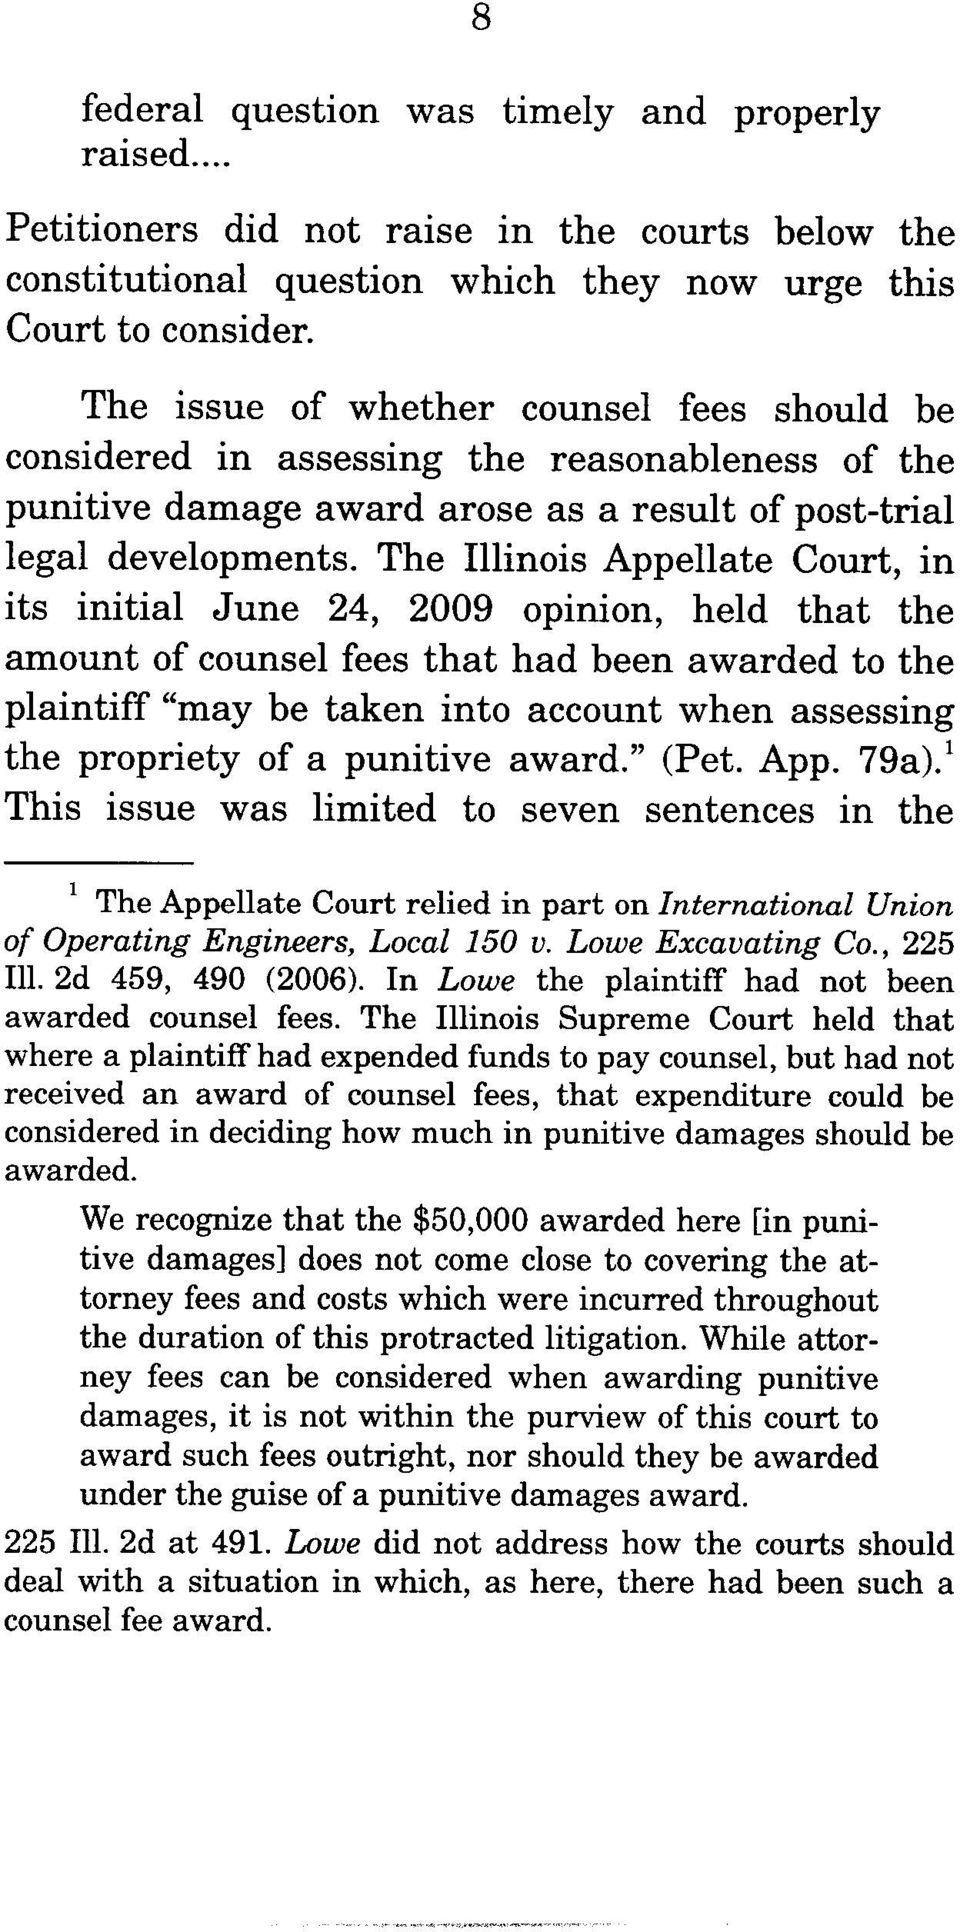 "The Illinois Appellate Court, in its initial June 24, 2009 opinion, held that the amount of counsel fees that had been awarded to the plaintiff ""may be taken into account when assessing the propriety"